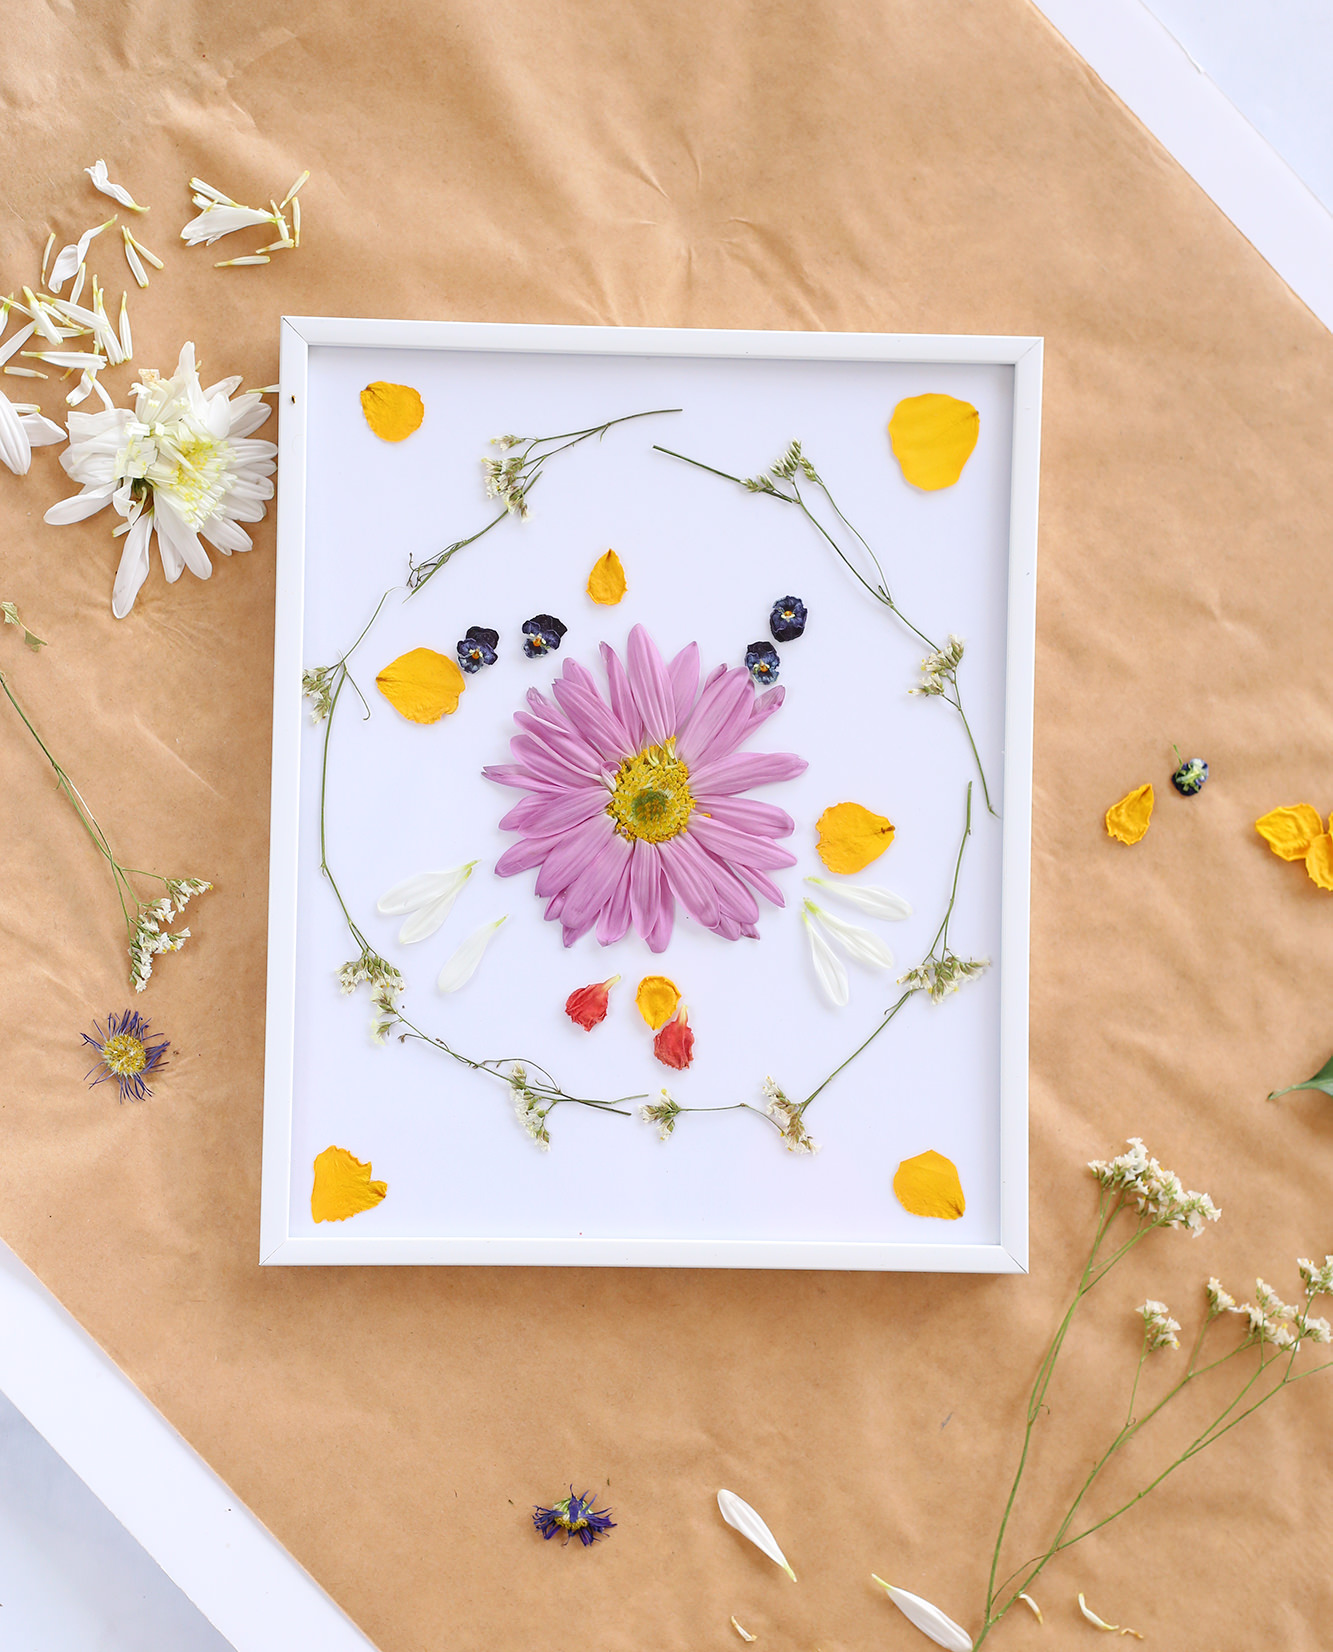 Display pressed flowers using a regular frame with a white or colored background!